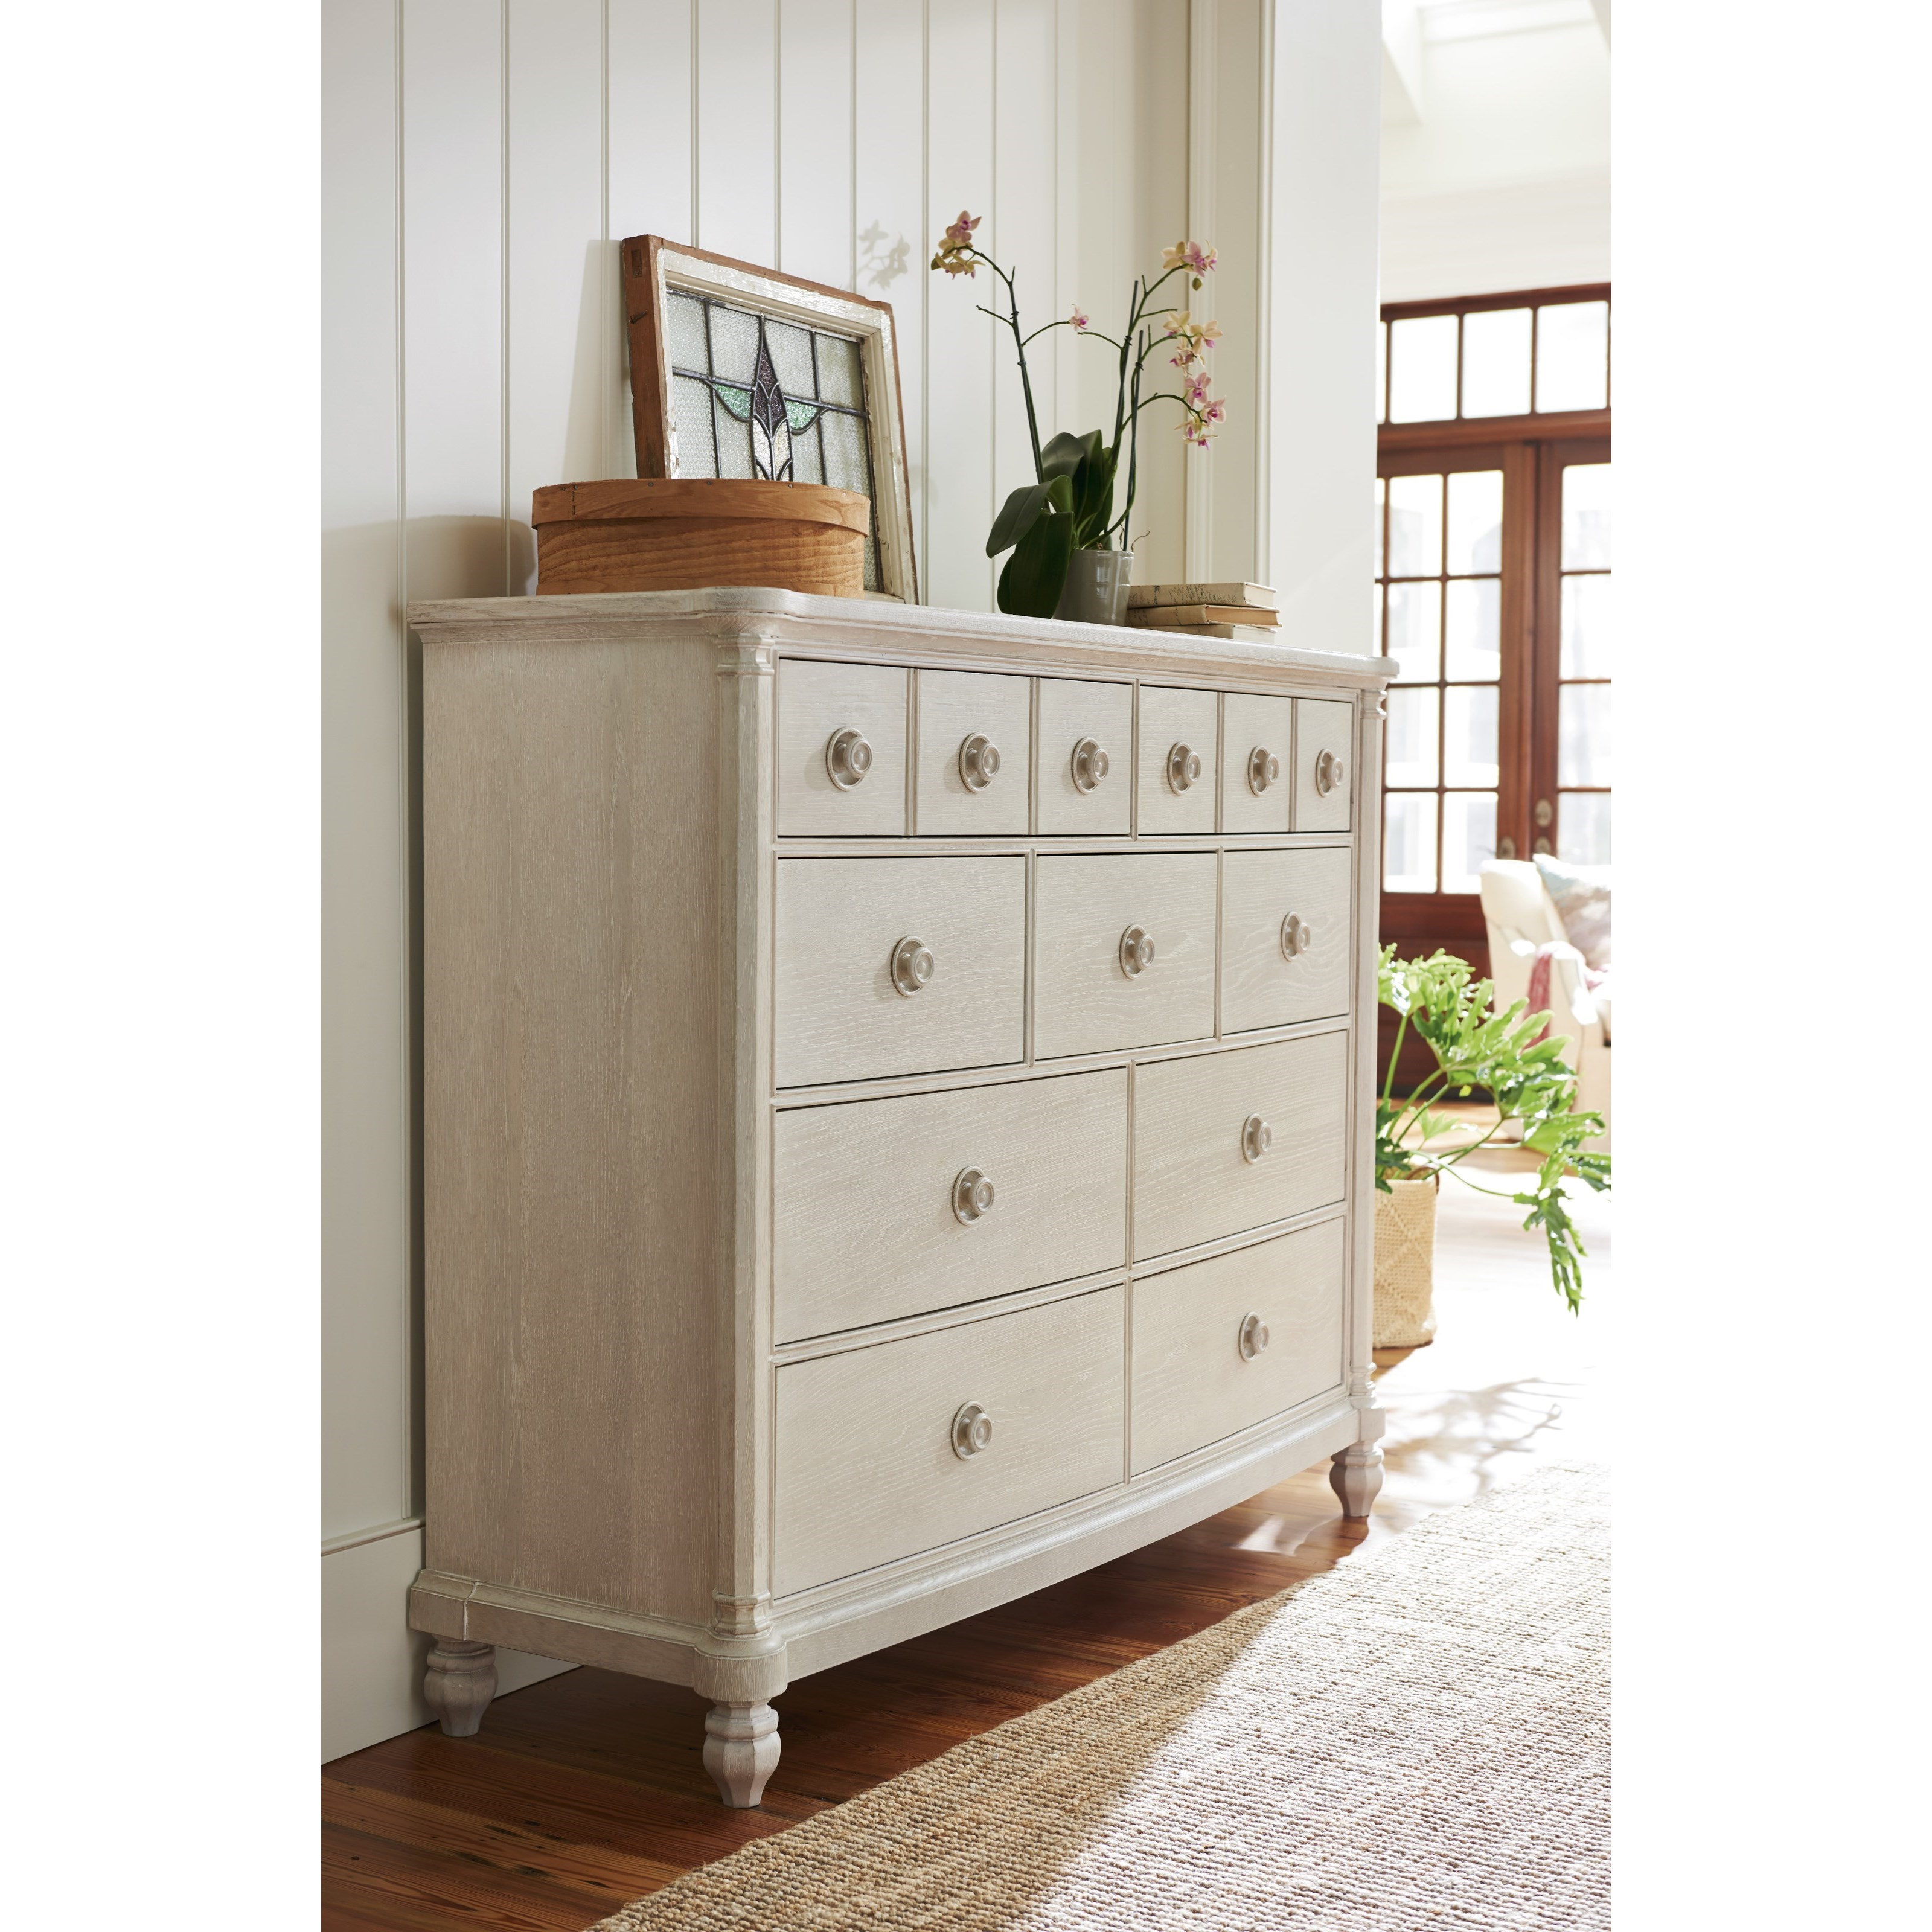 Paula Deen By Universal Bungalow 795180 Cottage Nine Drawer Dressing Chest With Jewelry Tray